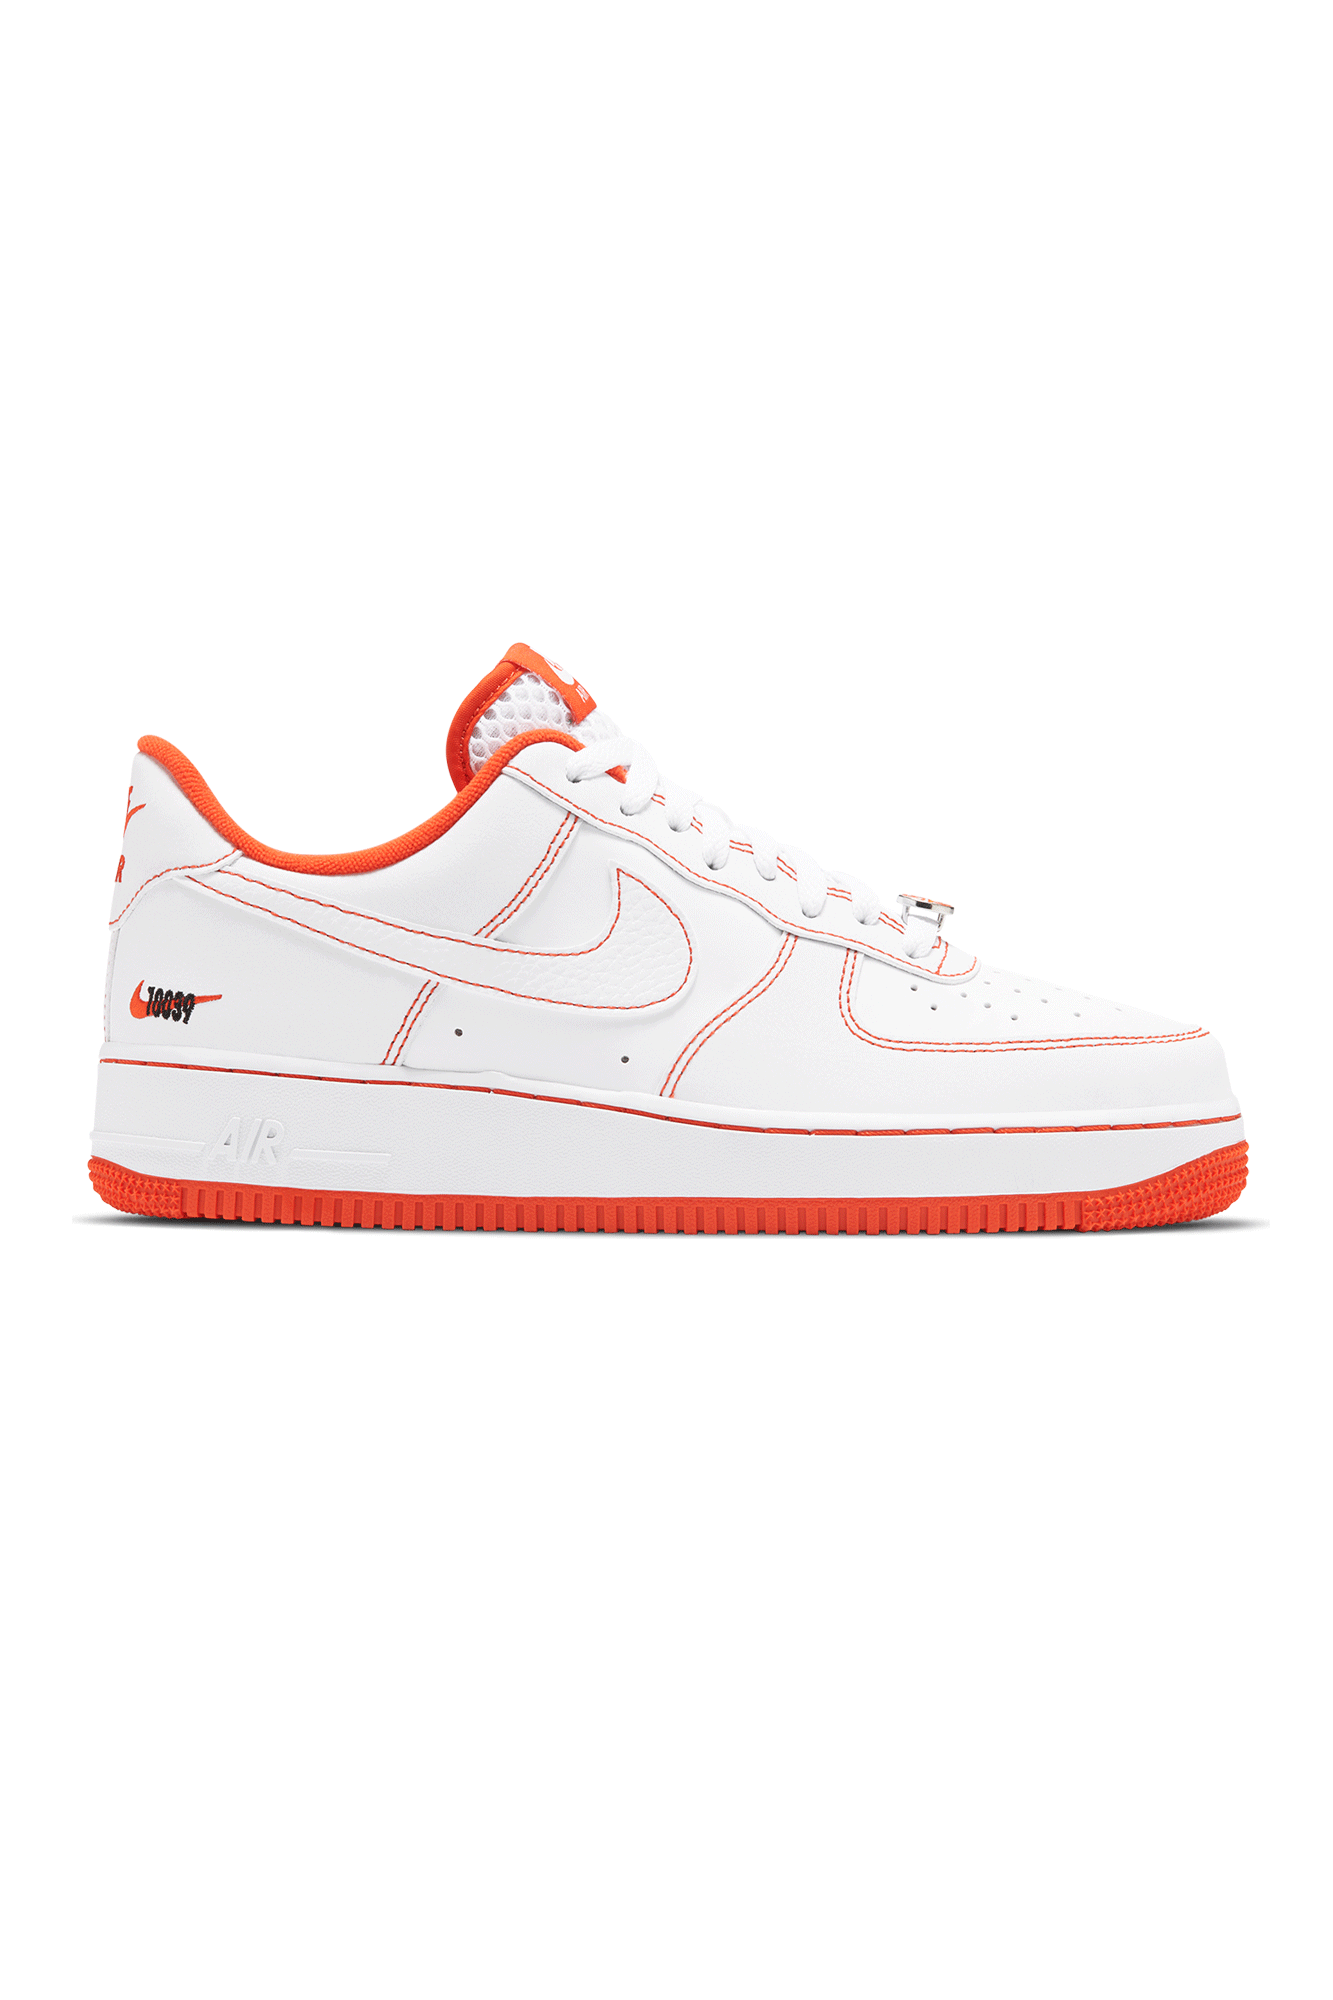 "Nike Sneakers Air Force 1 '07 LV8 EMB ""Rucker Park"" Bianco CT2585-#000#100#7 - One Block Down"